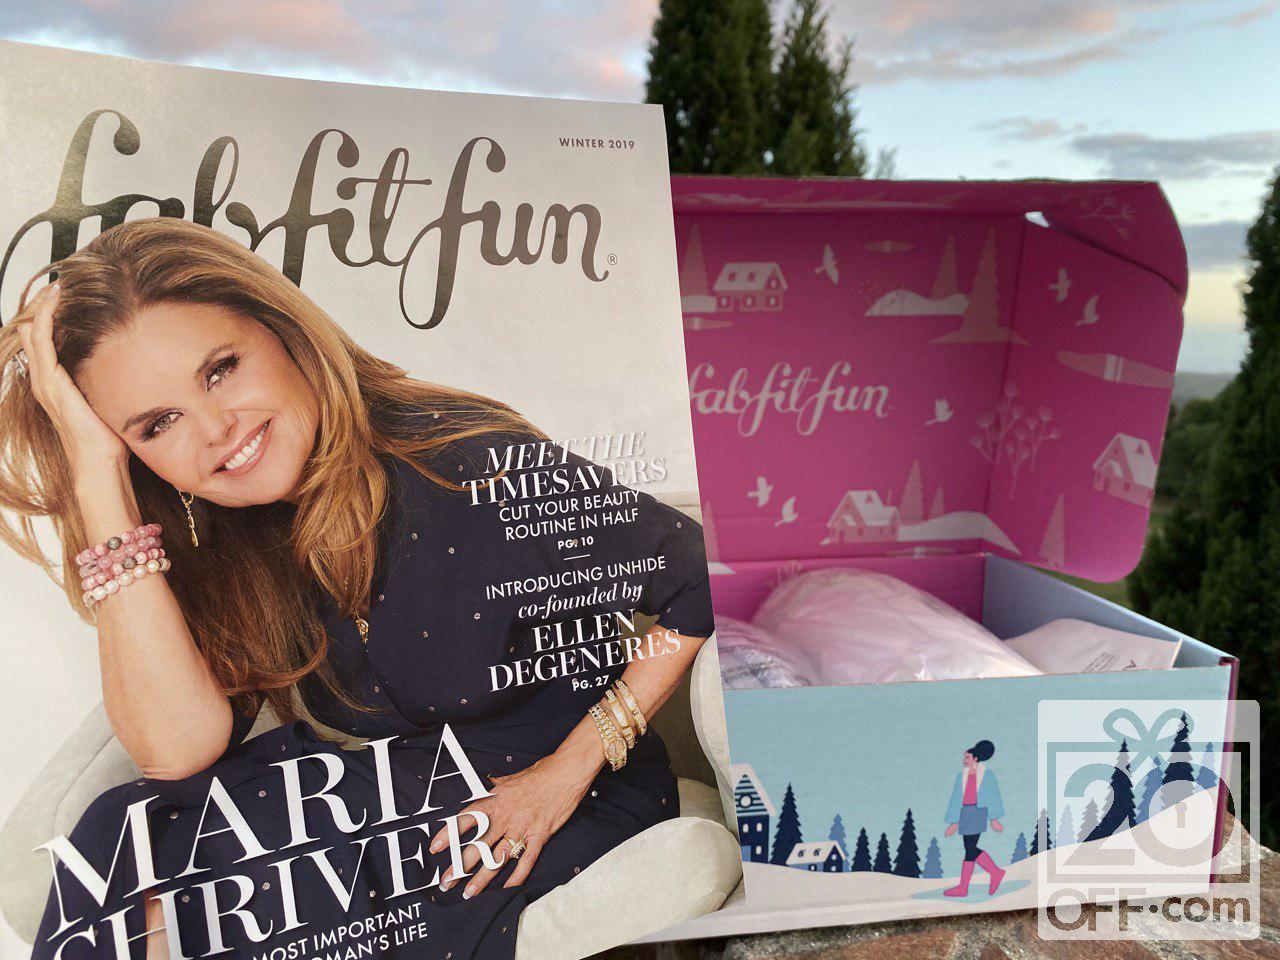 FabFitFun Winter 2019 Catalogue